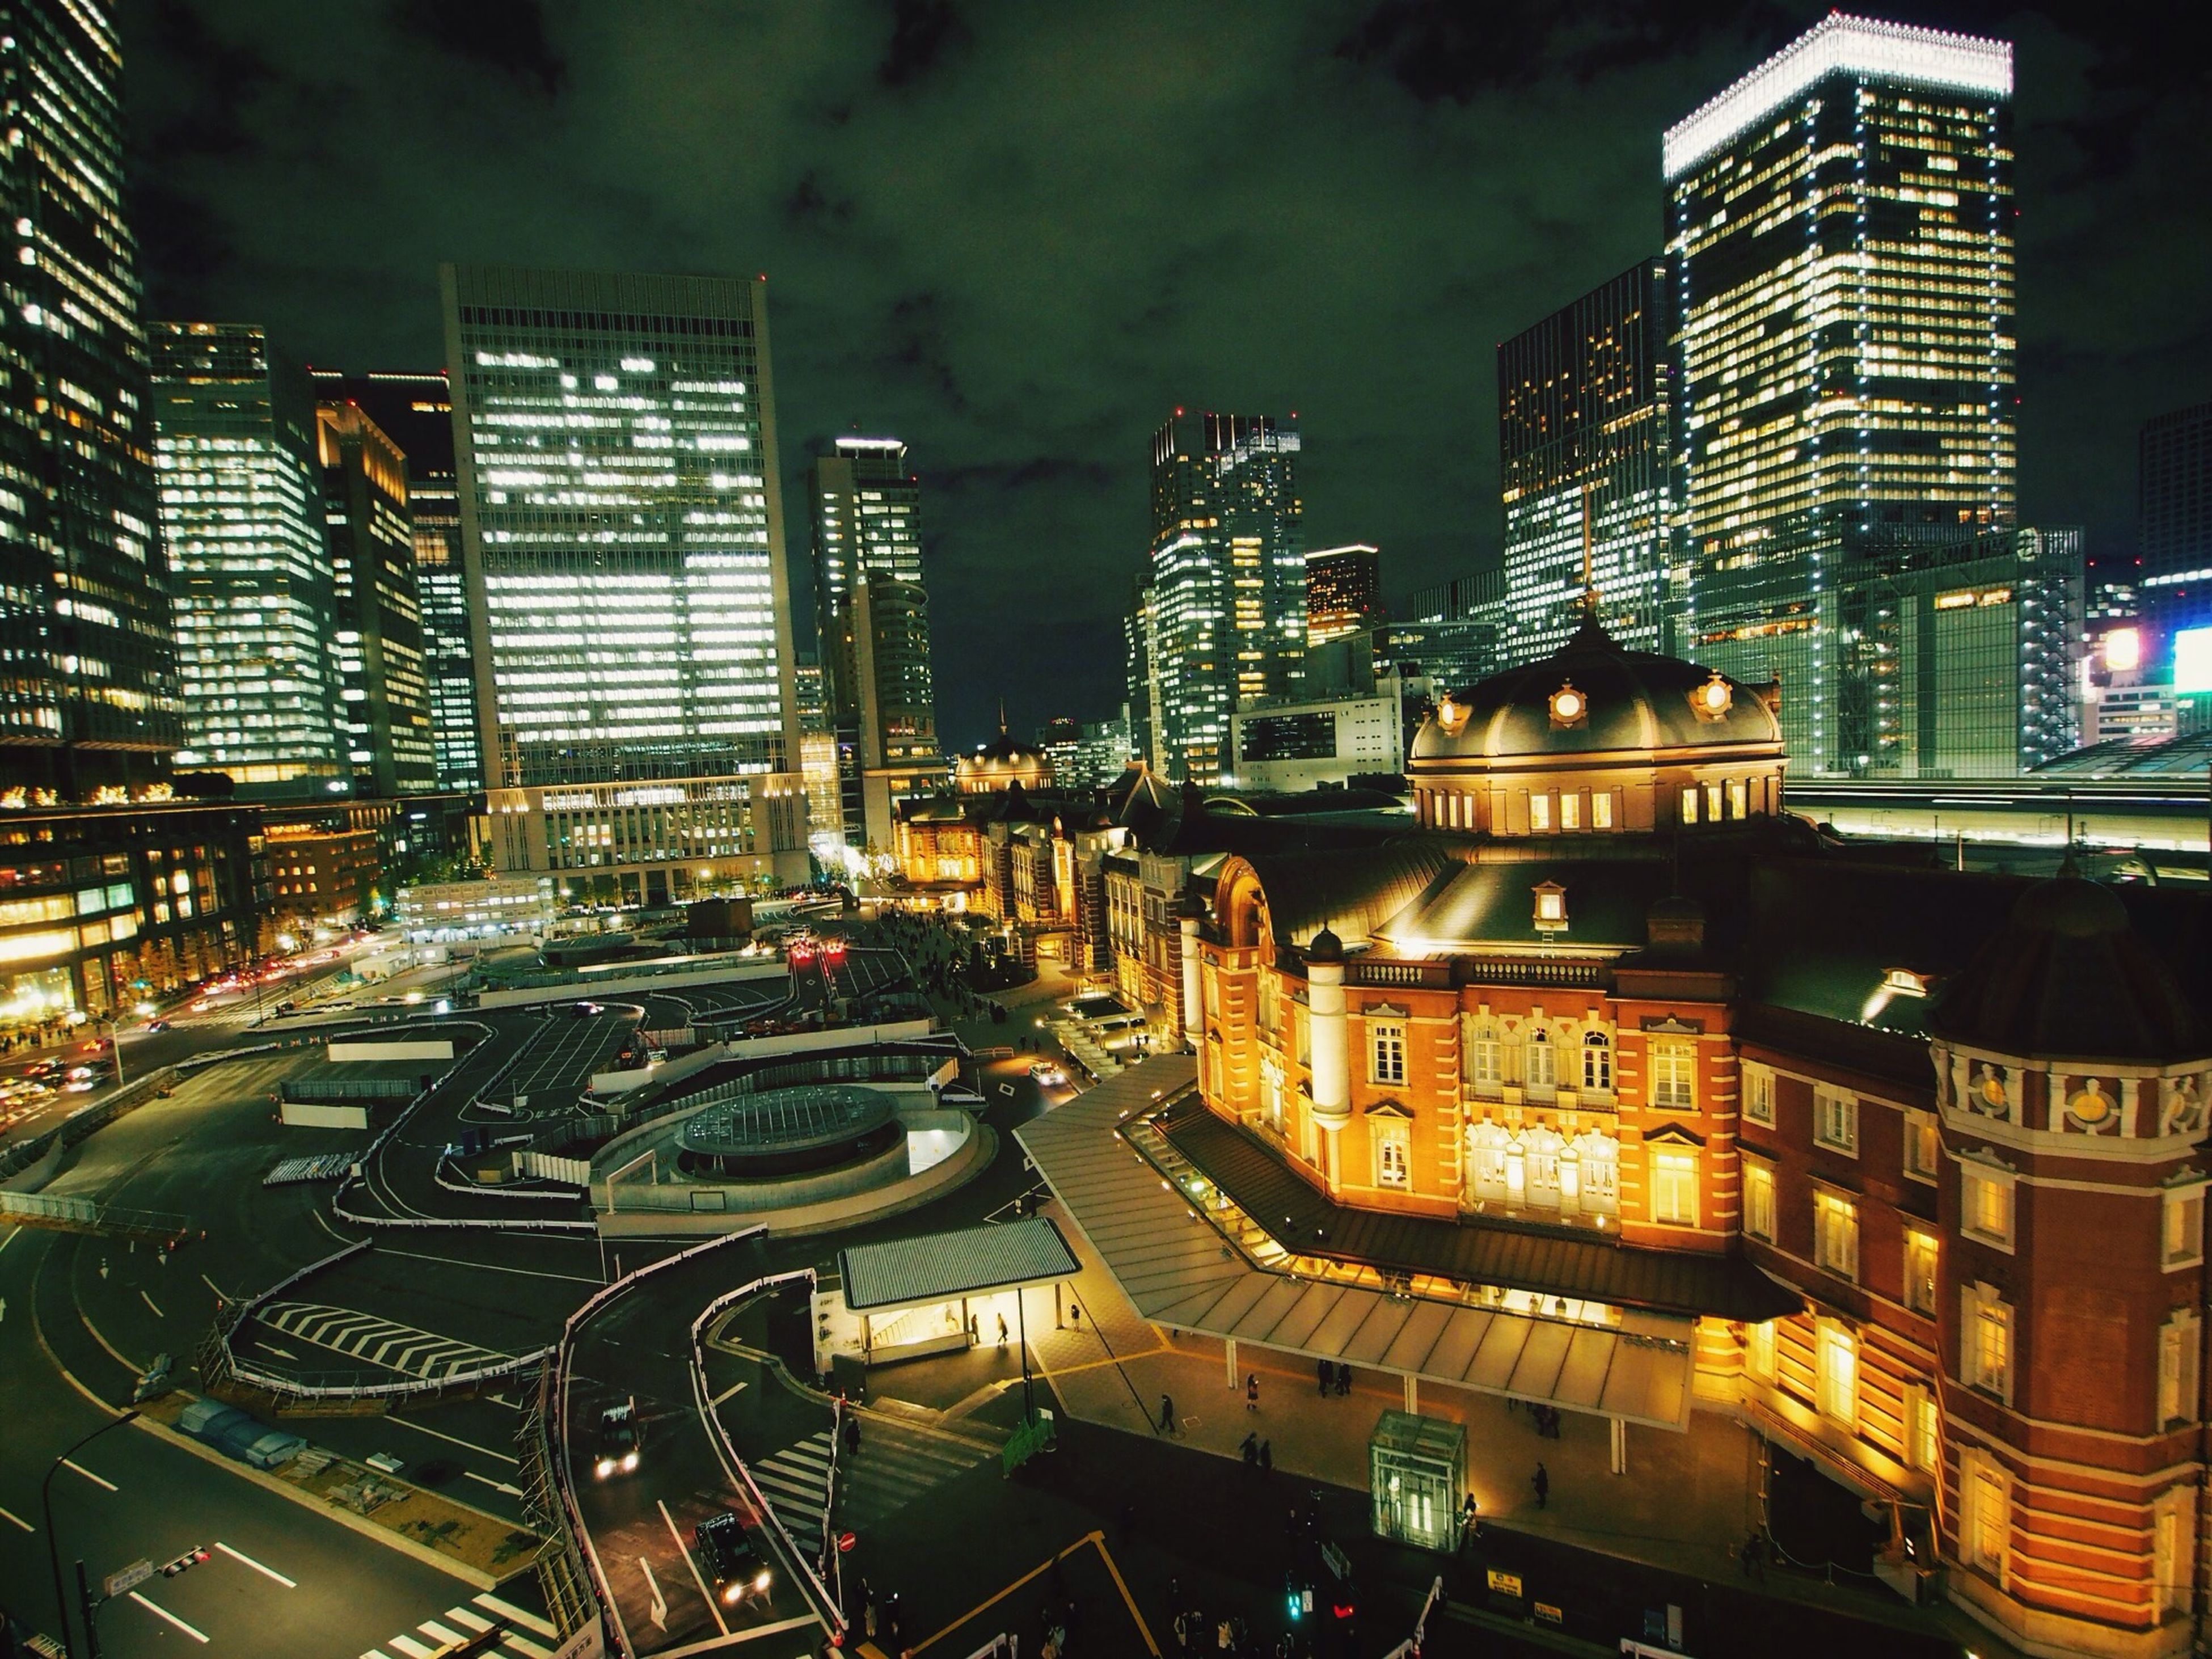 building exterior, city, architecture, built structure, illuminated, skyscraper, night, transportation, cityscape, car, city life, office building, tall - high, street, land vehicle, modern, high angle view, city street, traffic, tower